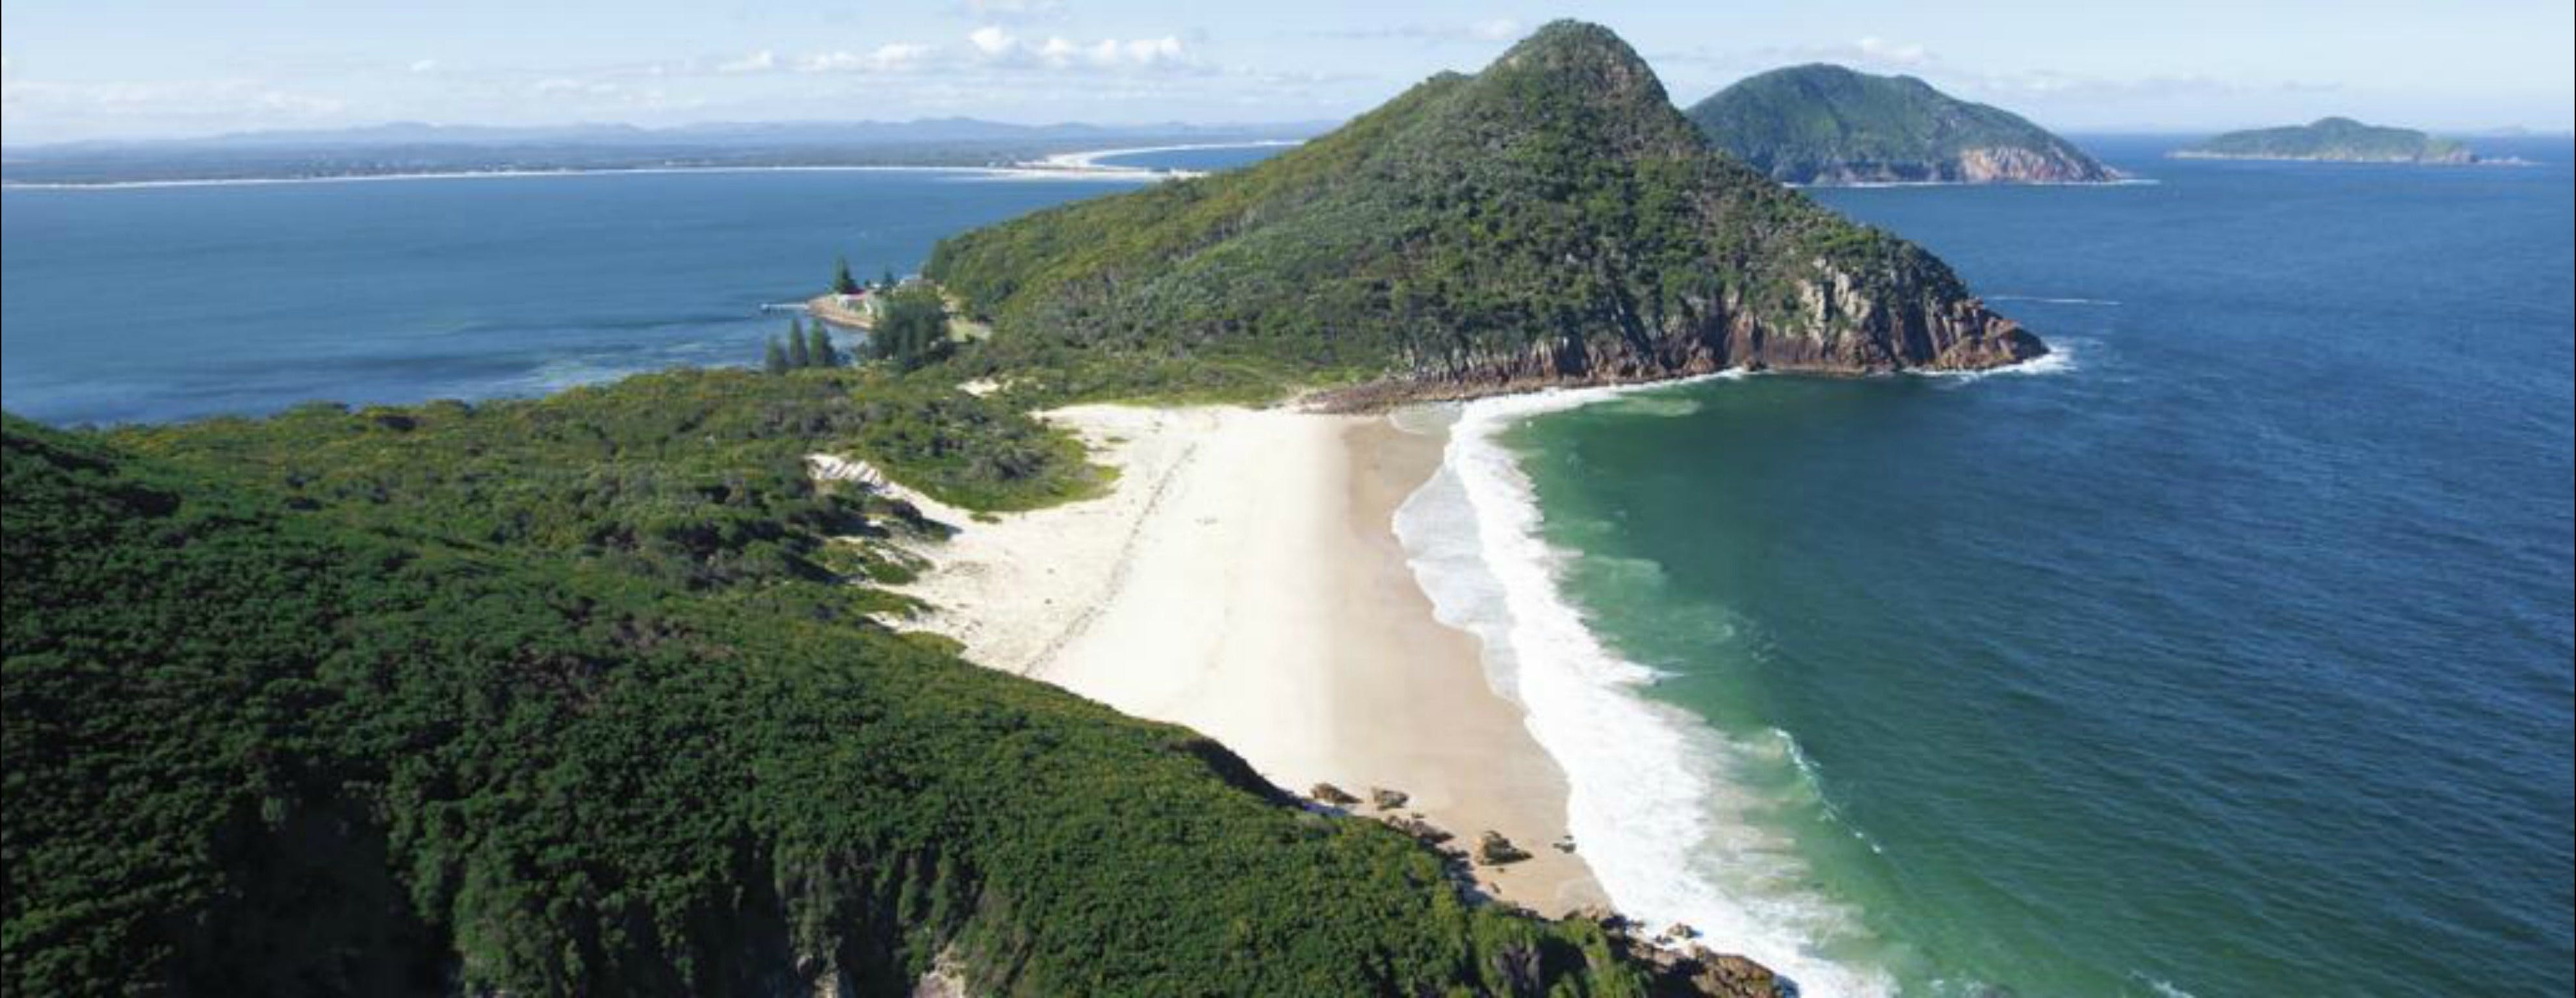 Port Stephens Great Lakes Marine Park - Attractions Brisbane